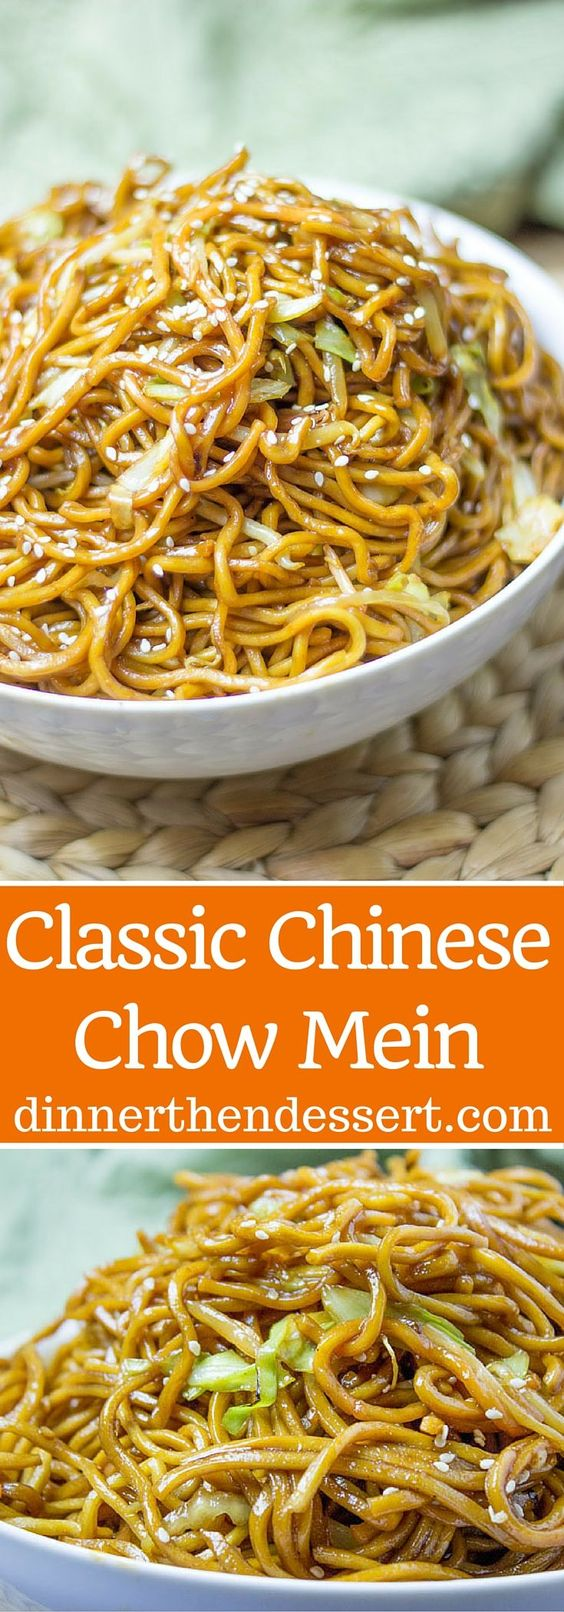 Classic chinese chow mein with authentic ingredients and easy classic chinese chow mein with authentic ingredients and easy ingredient swaps to make this a pantry meal in a pinch dinner recipes to try pinterest forumfinder Image collections